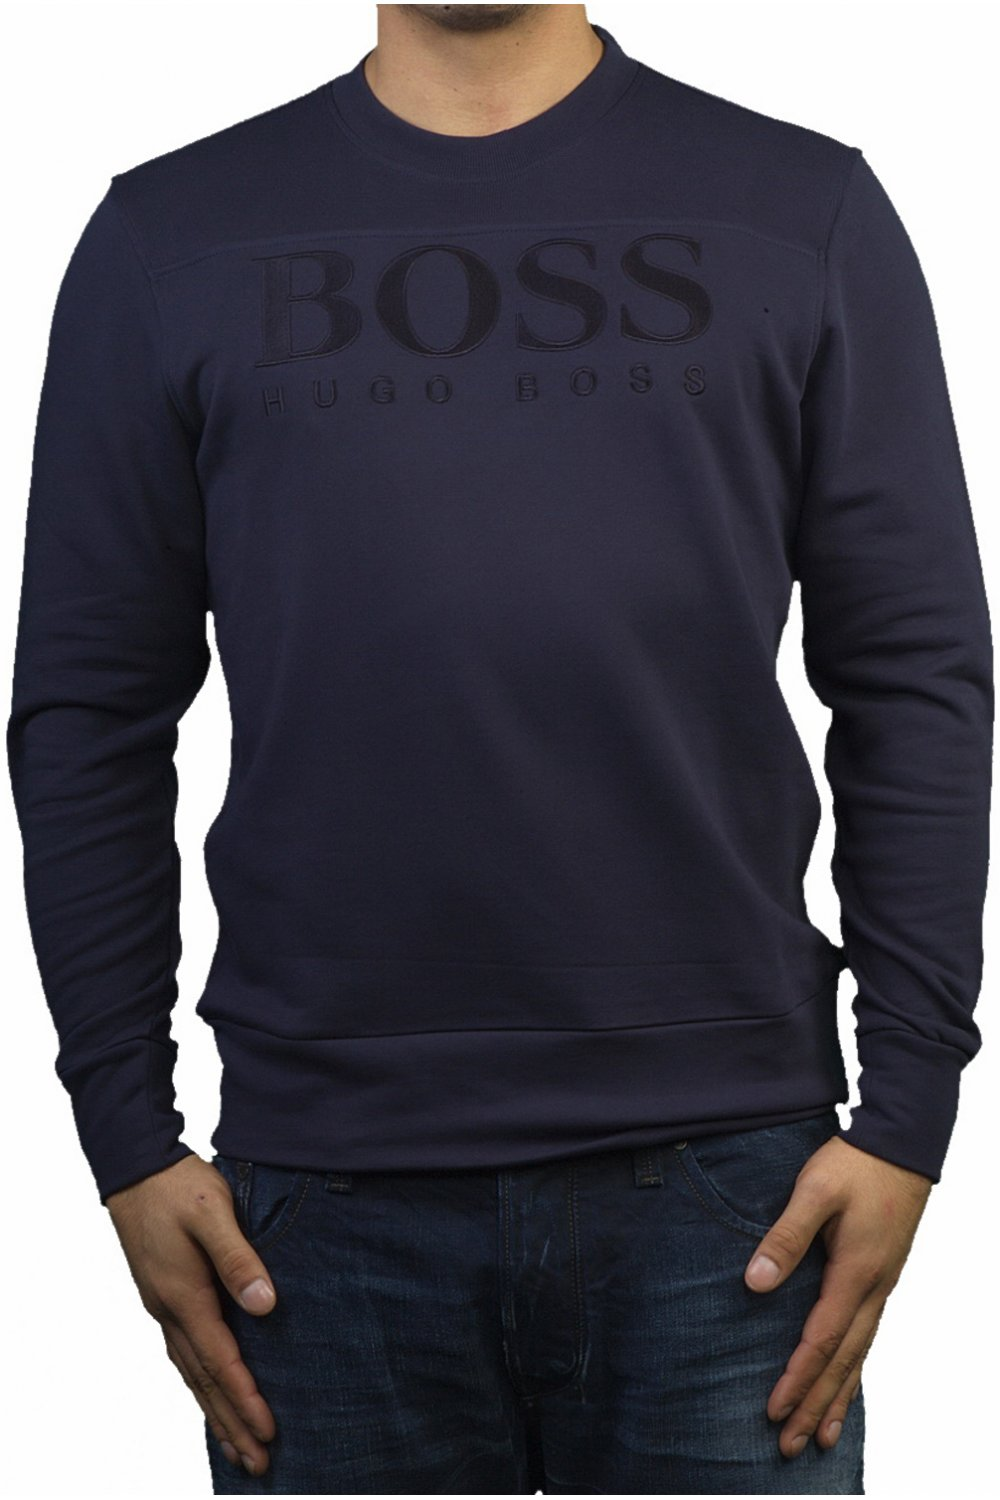 hugo boss regular fit sweatshirt in navy salbo 50230913 410 ebay. Black Bedroom Furniture Sets. Home Design Ideas